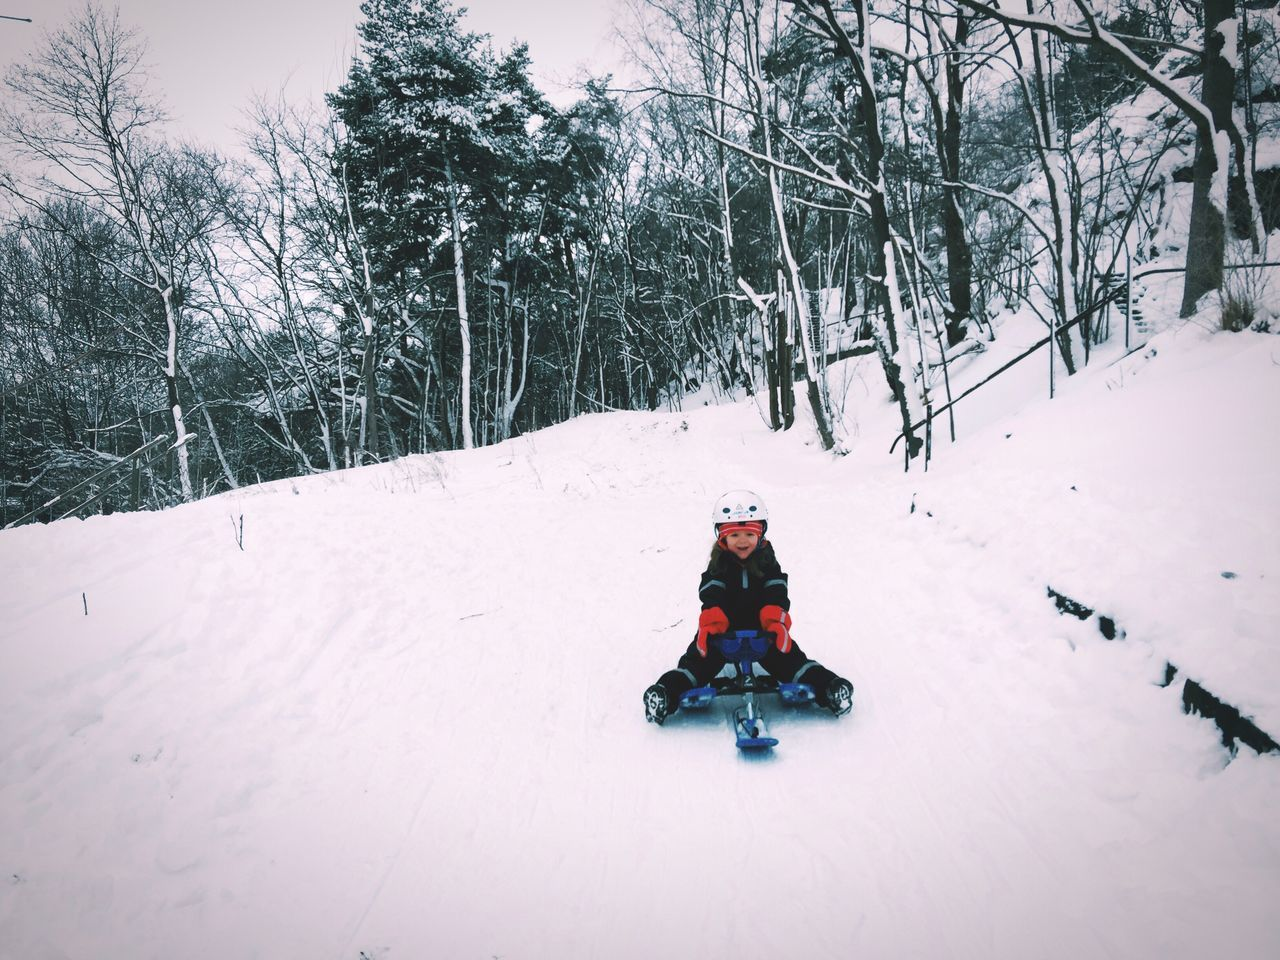 Loving her new snowracer! Winter Snow Cold Temperature Childhood Tree Bare Tree Outdoors Nature Day No People Beauty In Nature